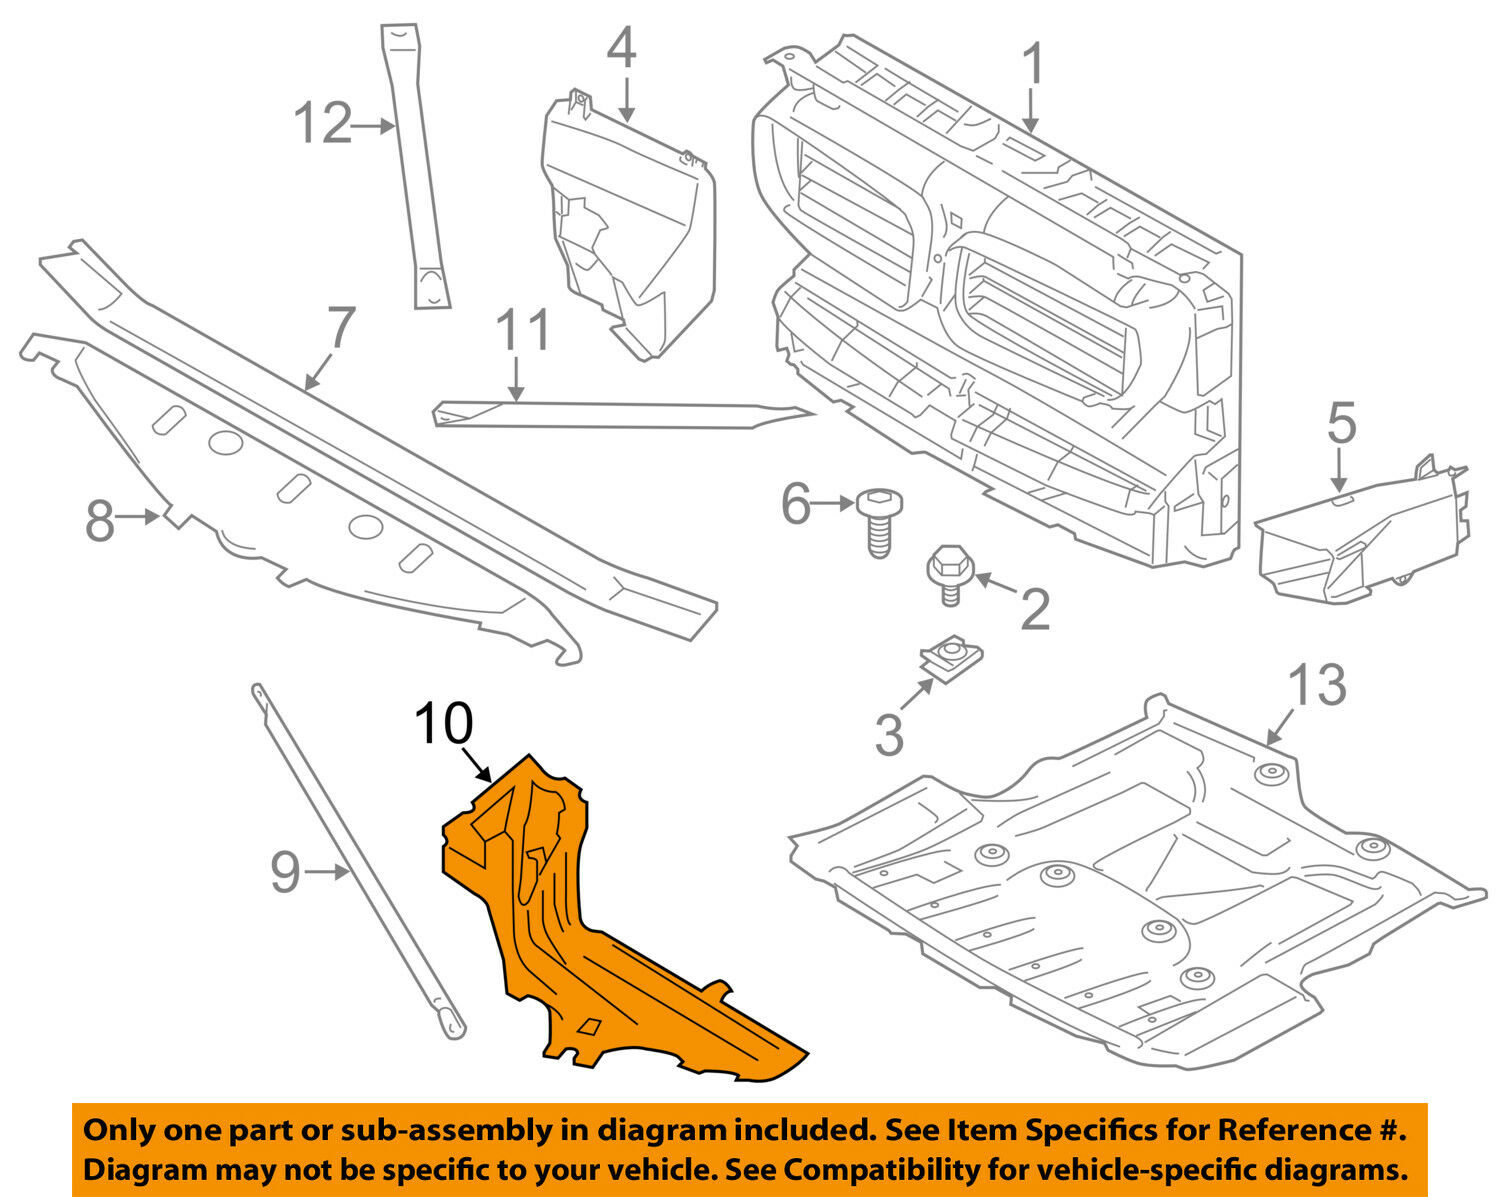 Bmw 528i Radiator Diagram Electrical Wiring Diagrams 2008 Engine Oem 11 16 Core Support Outer Right 1995 525i